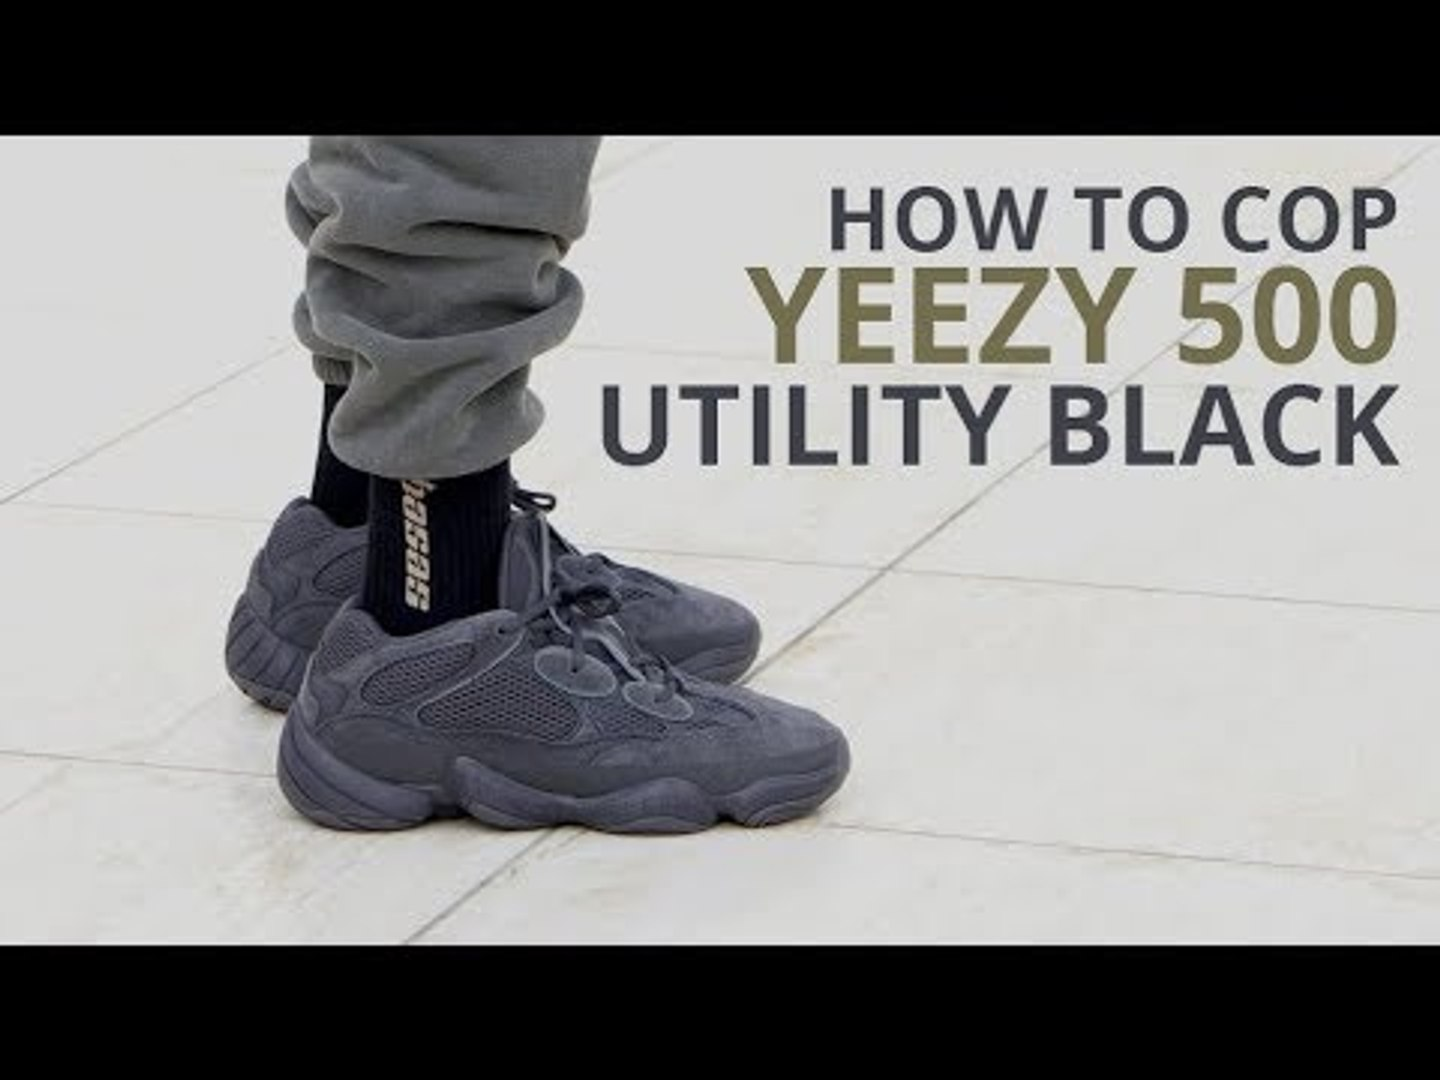 HOW TO COP THE YEEZY 500 UTILITY BLACK | RELEASE DATE, RAFFLES, CONFIRMED & GIVEAWAY